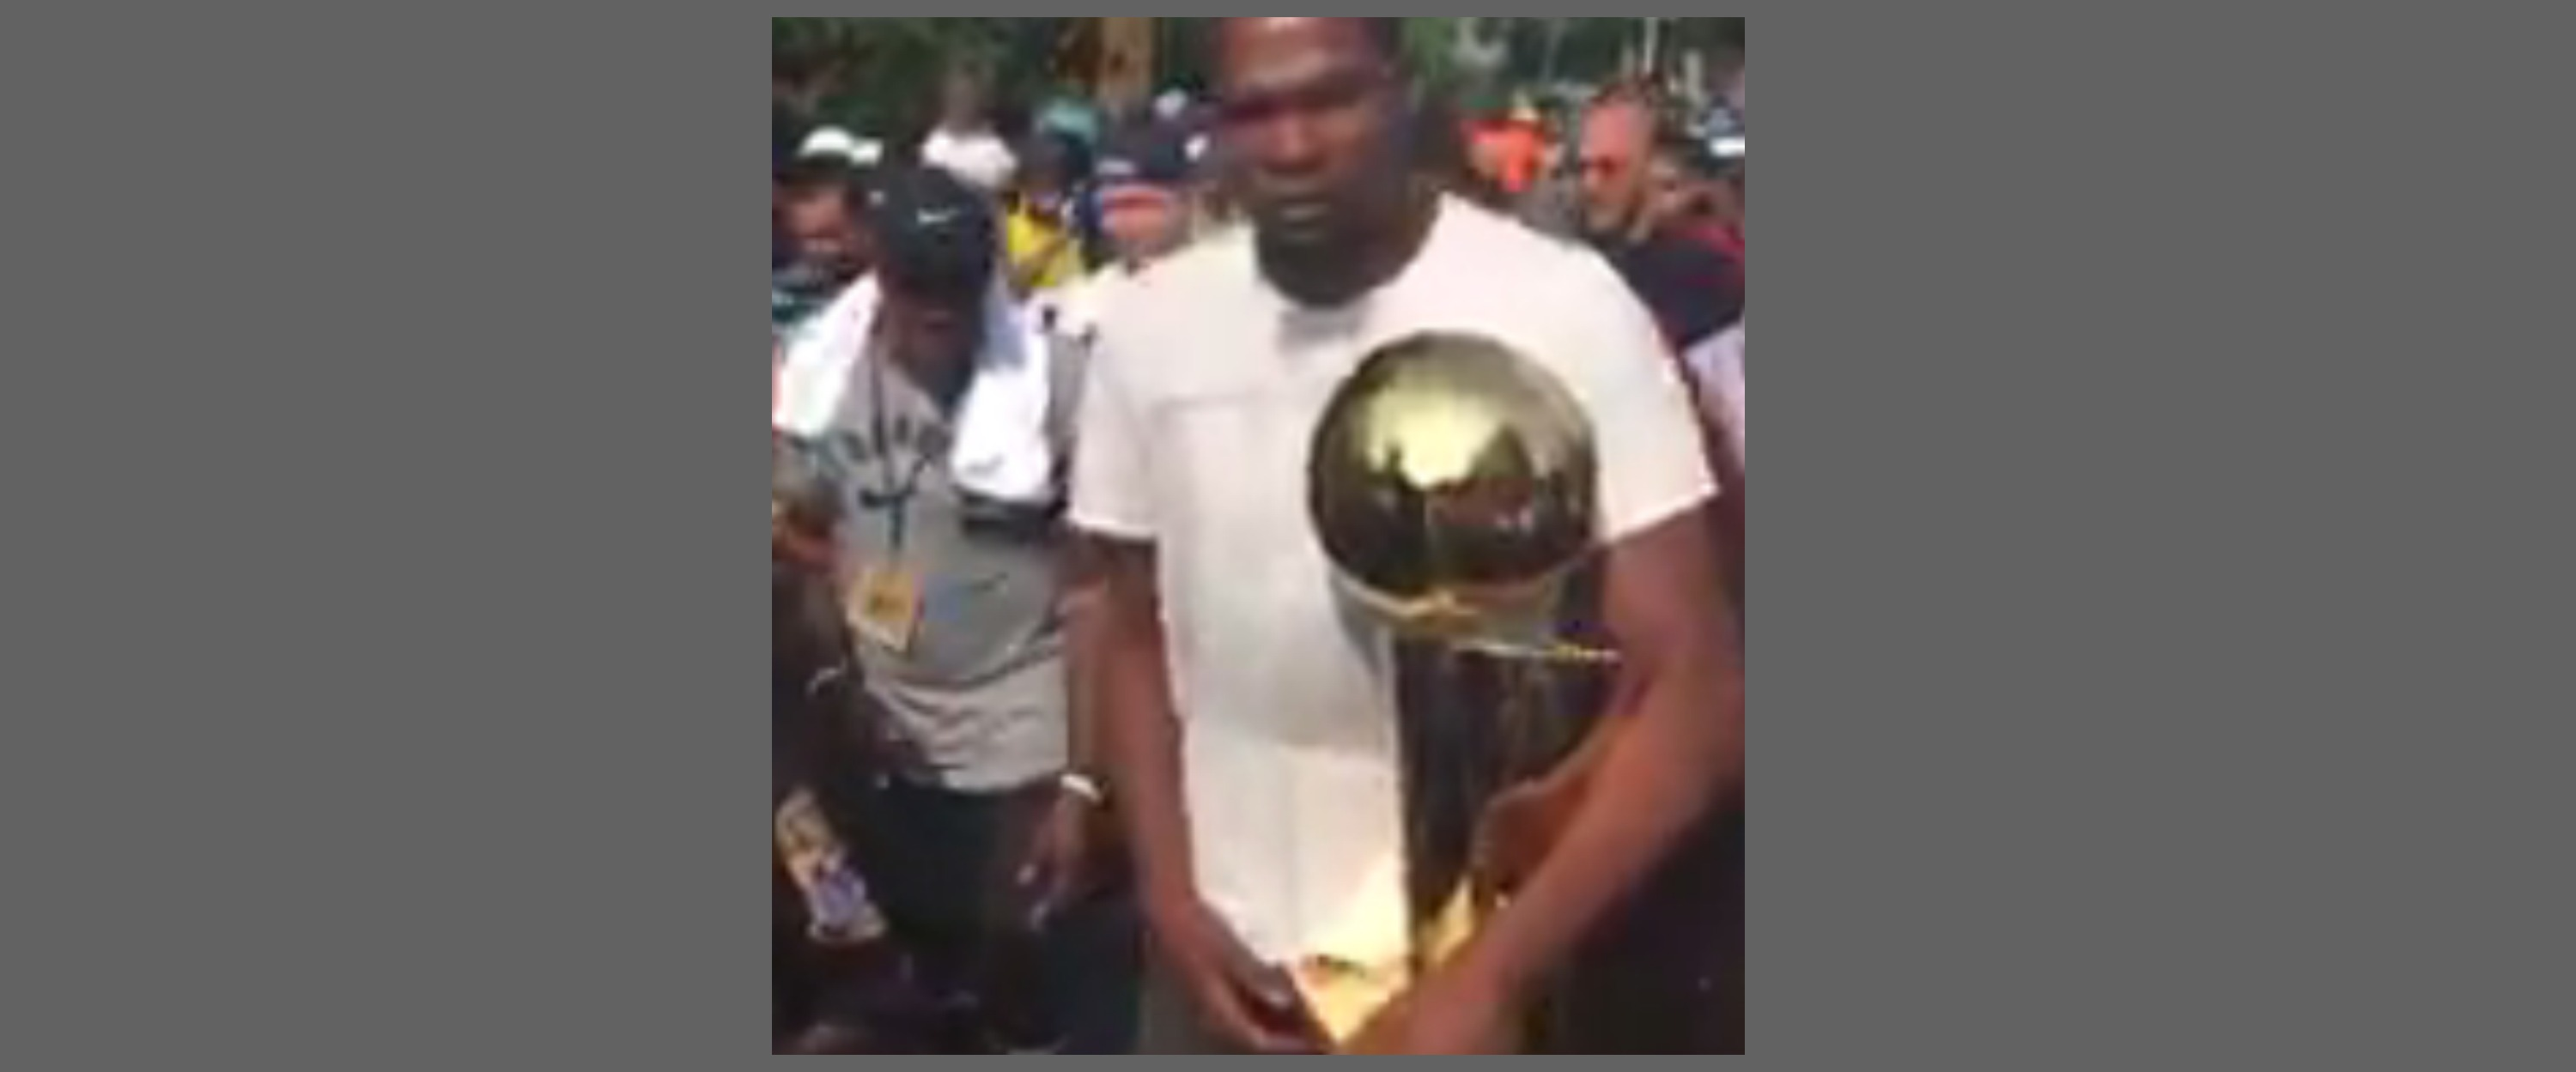 NBA superstar Kevin Durant arrives for victory parade in Seat Pleasant, Md. Thursday, Aug. 17, 2017 (John Gonzalez/ABC7)